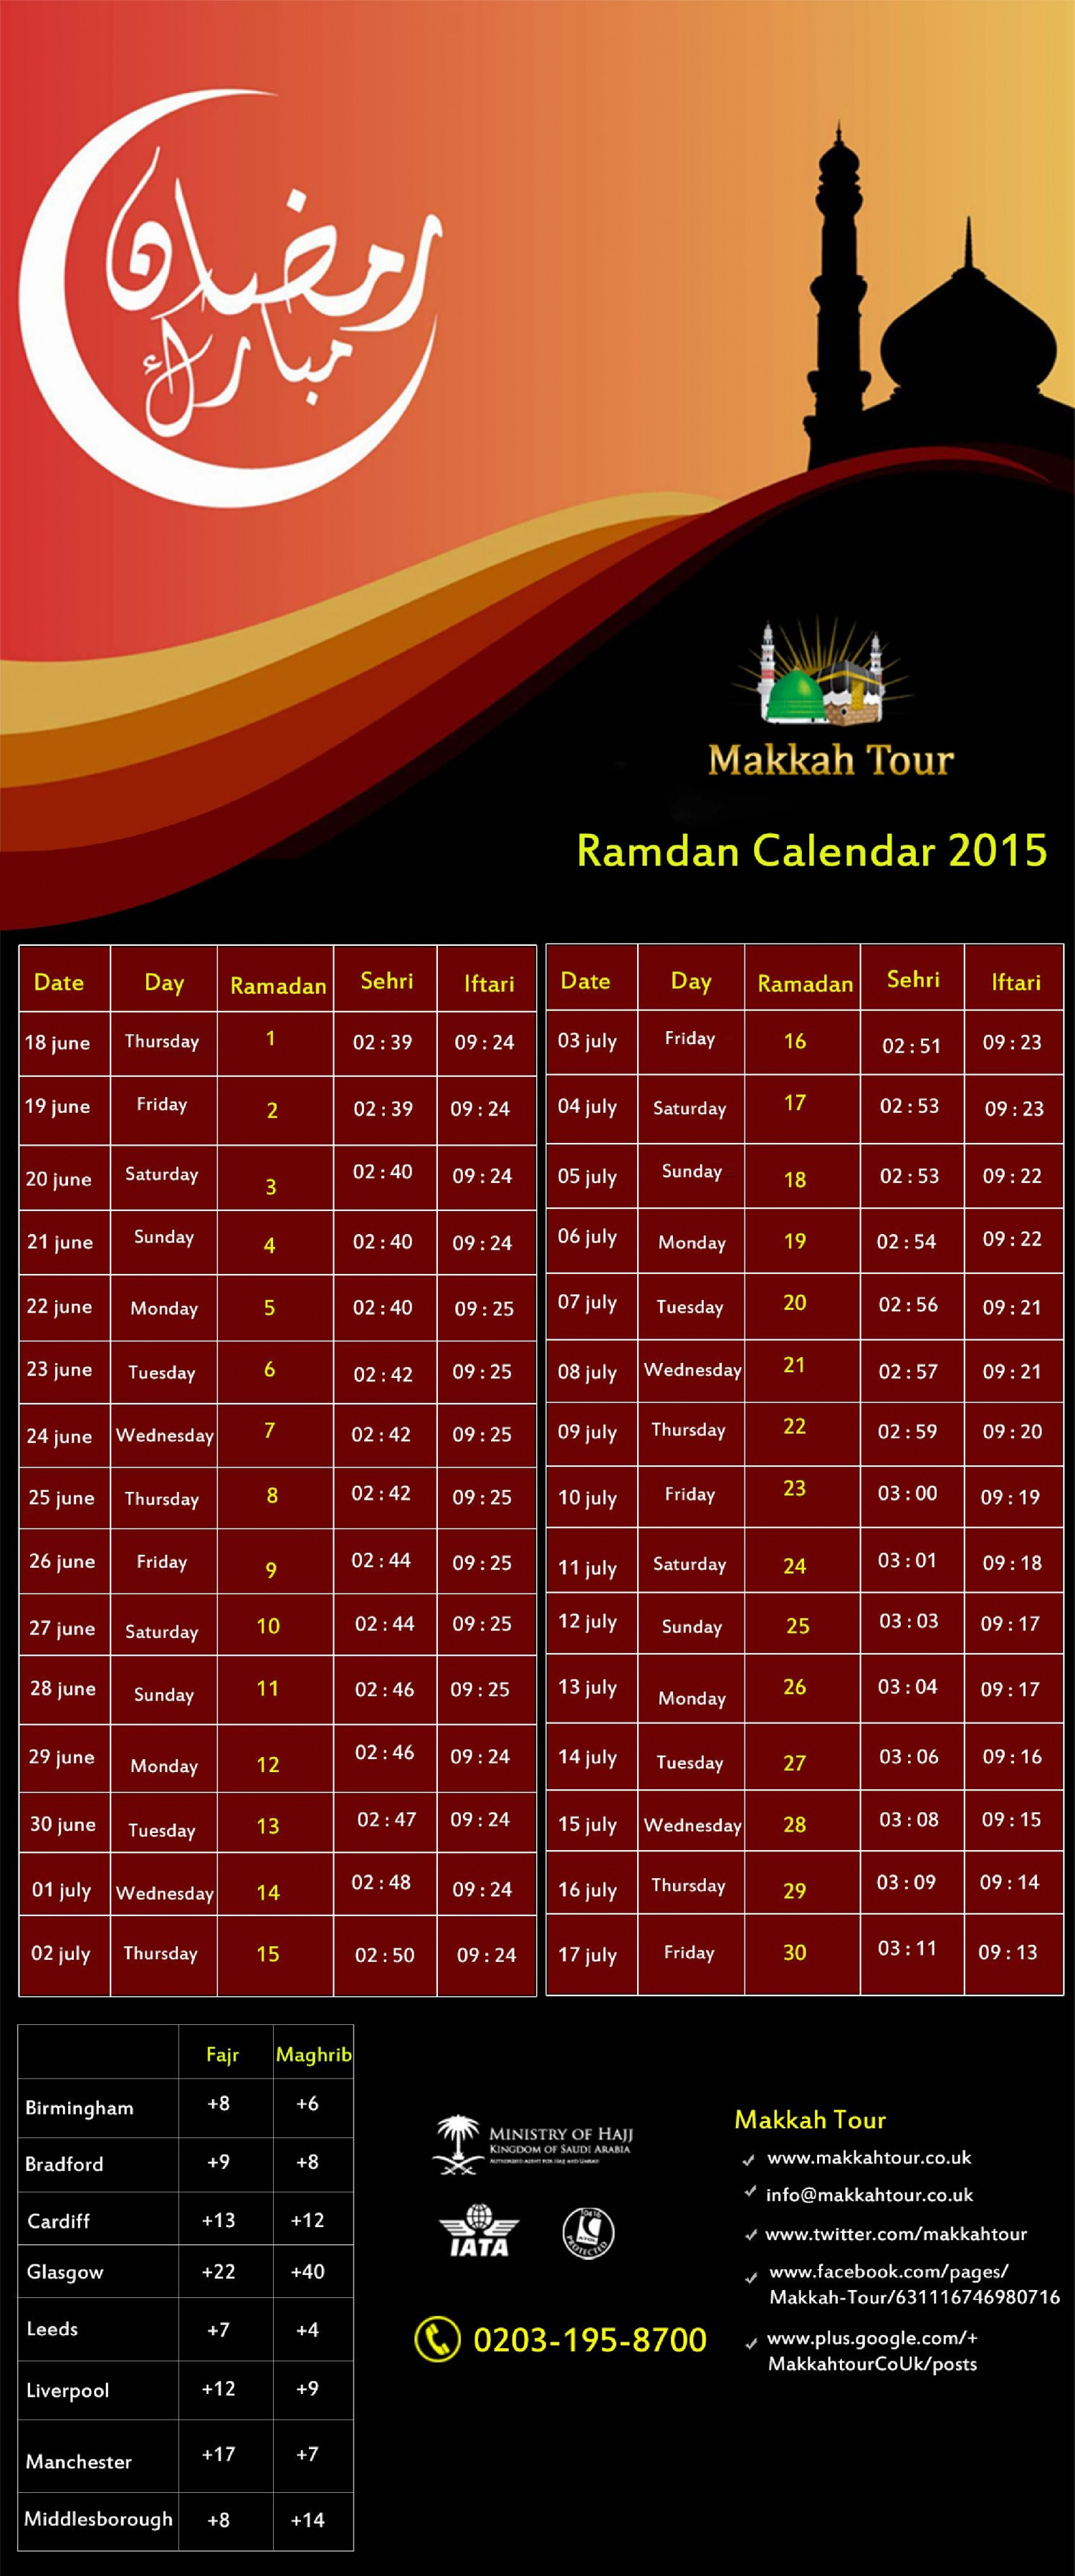 Ramadan Timetable for the UK in 2015 | Visual ly